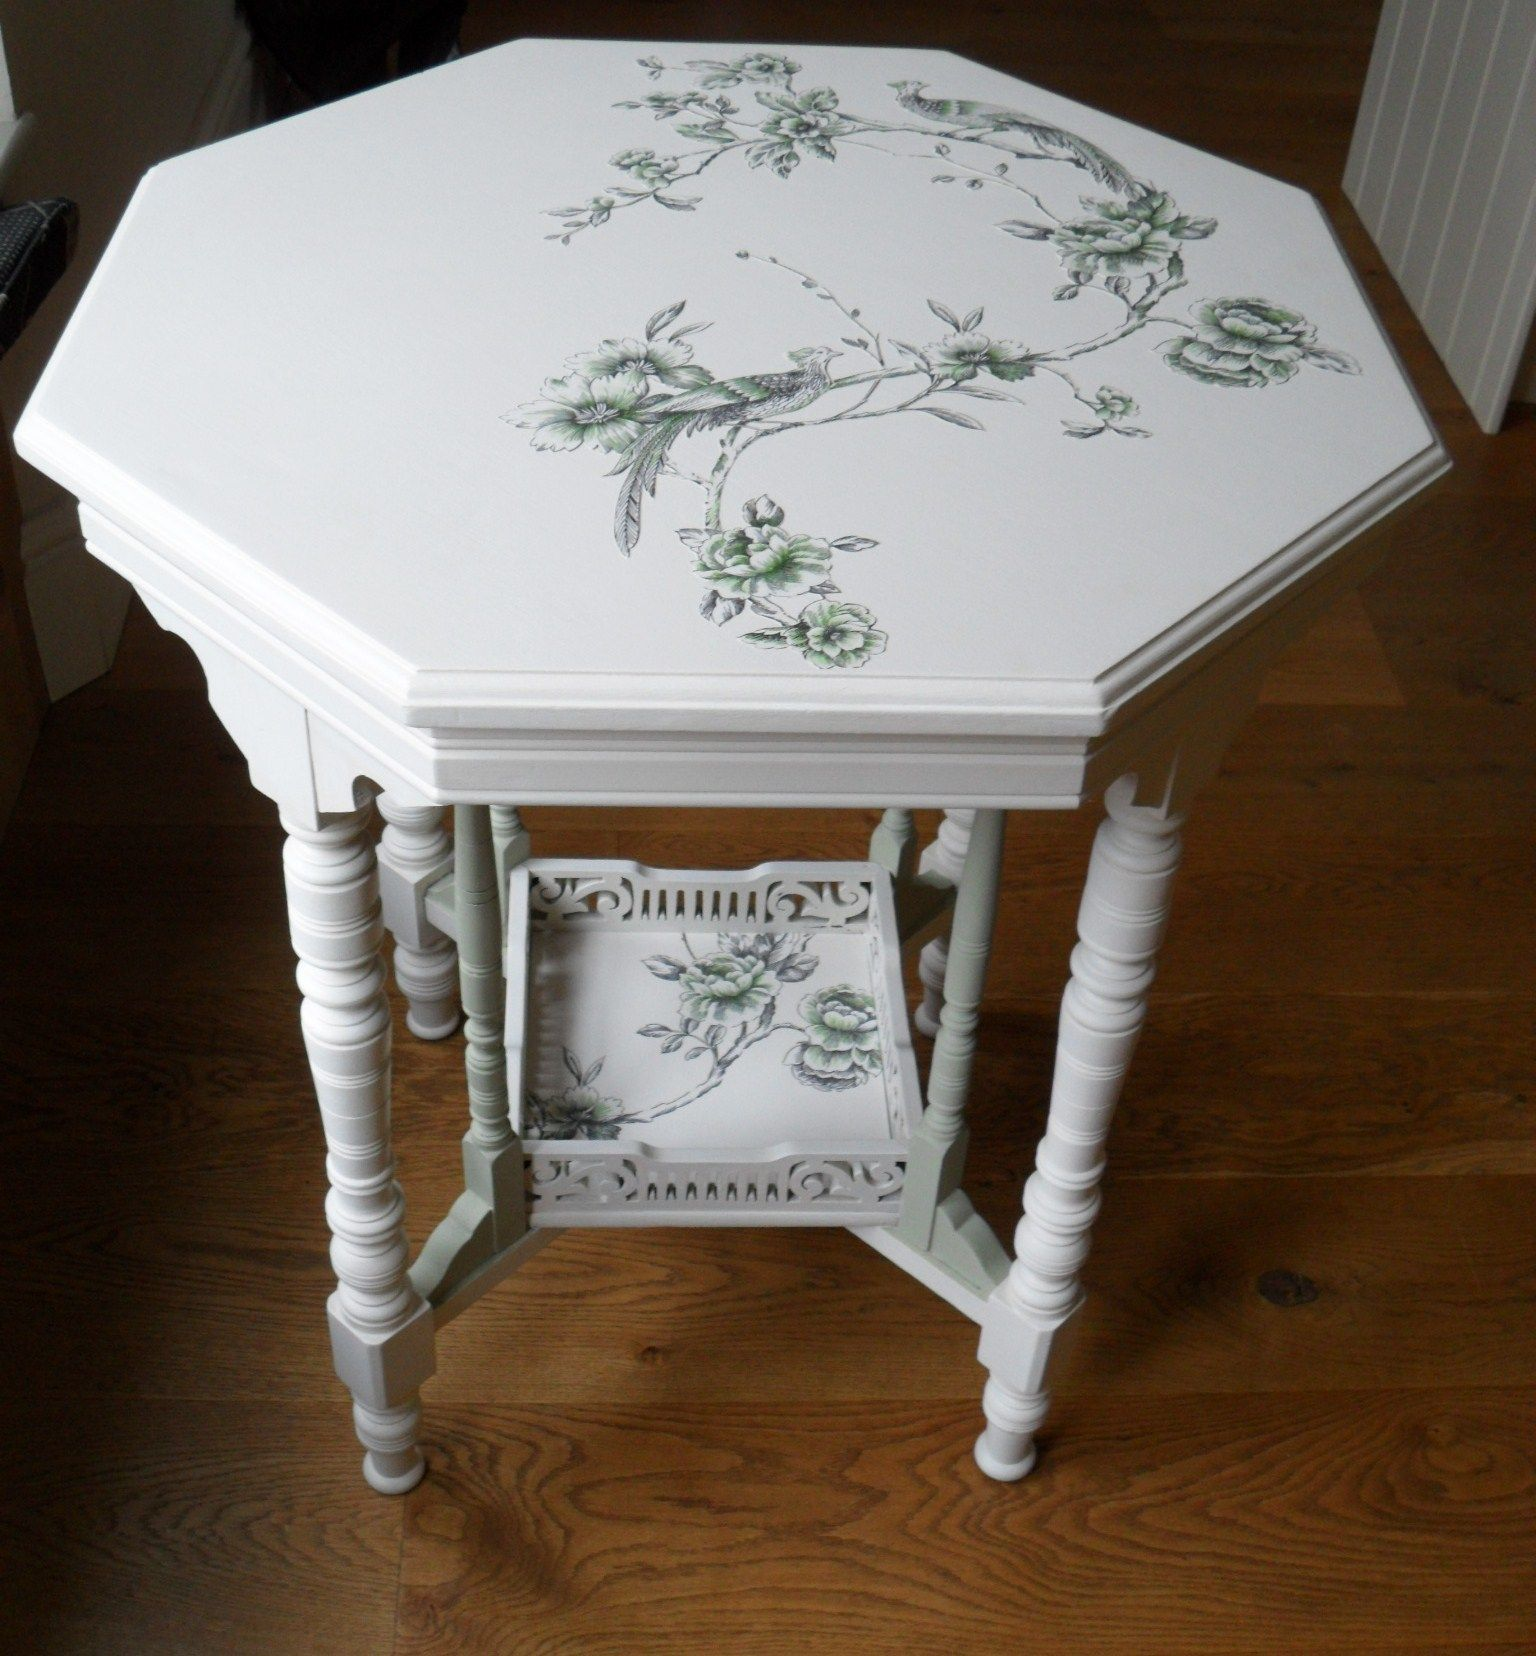 two day decoupage furniture workshop | decoupage furniture